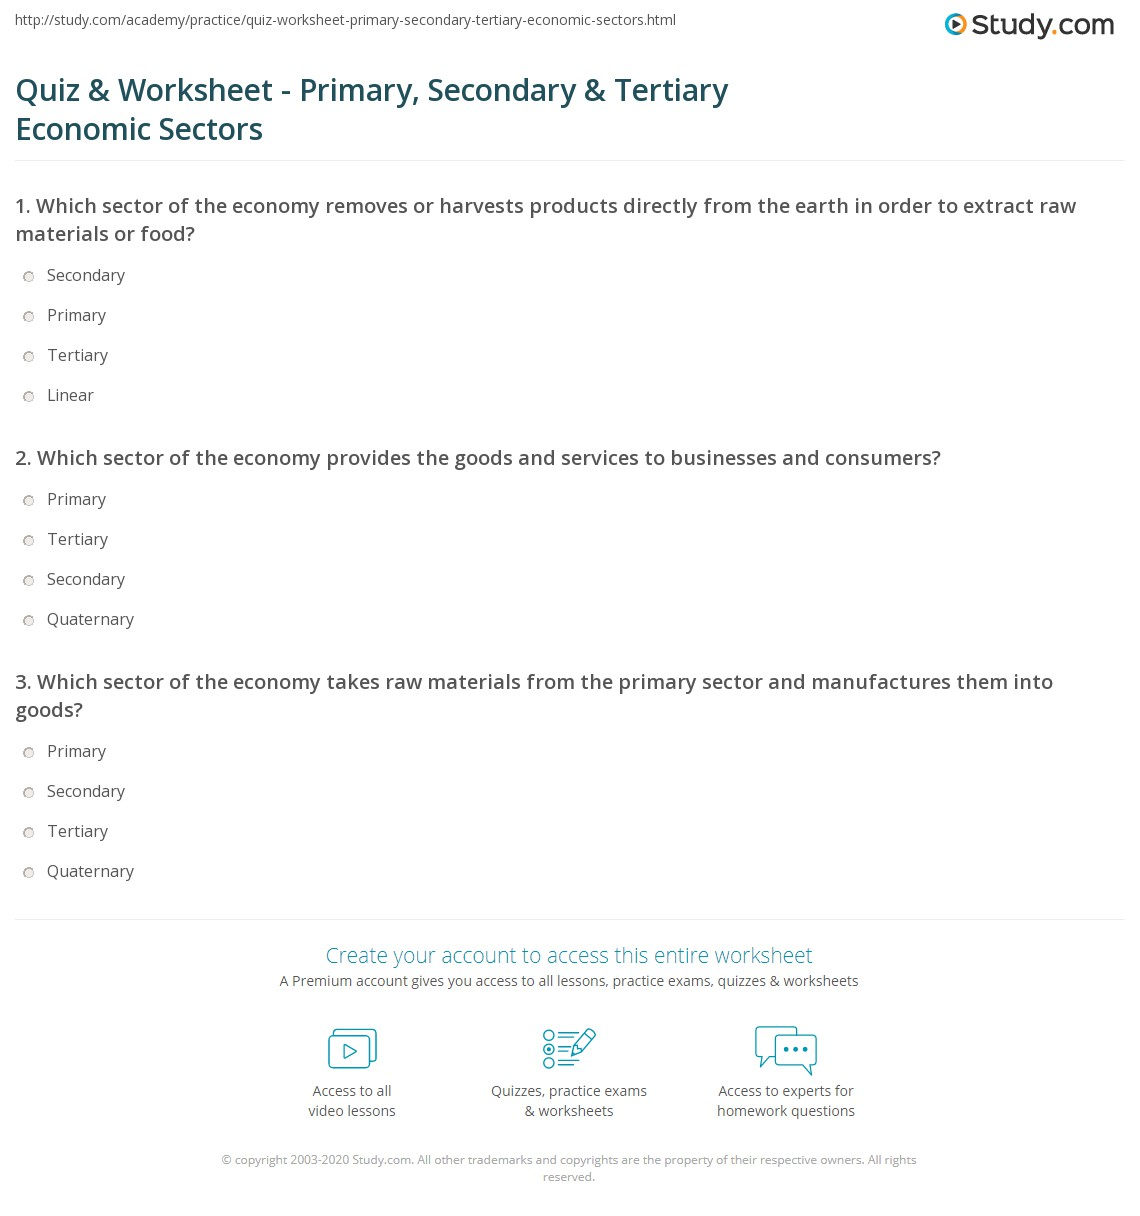 Printables Economics Worksheets printables economics worksheets for high school safarmediapps quiz worksheet primary secondary tertiary economic sectors print worksheet